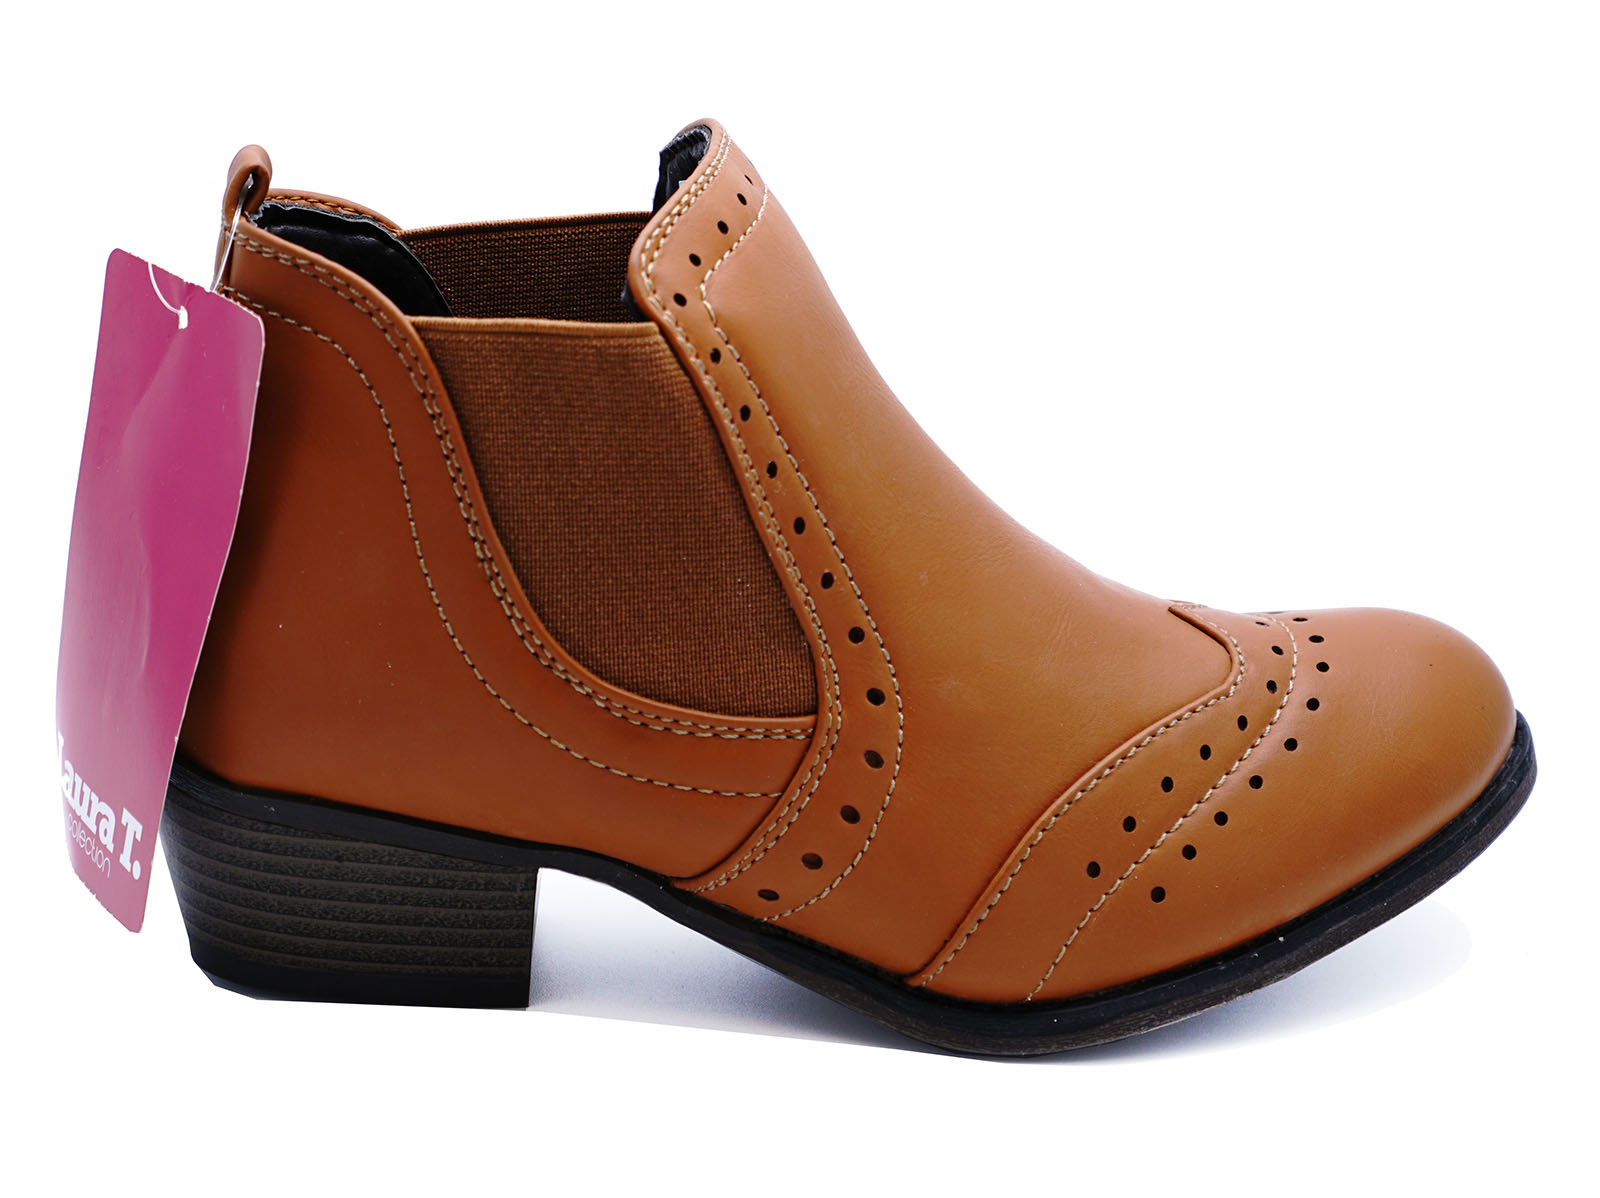 Shoes with Benefits. Extra padding. Extended wide widths. And boots, heels & flats that make you so glad it's fall.